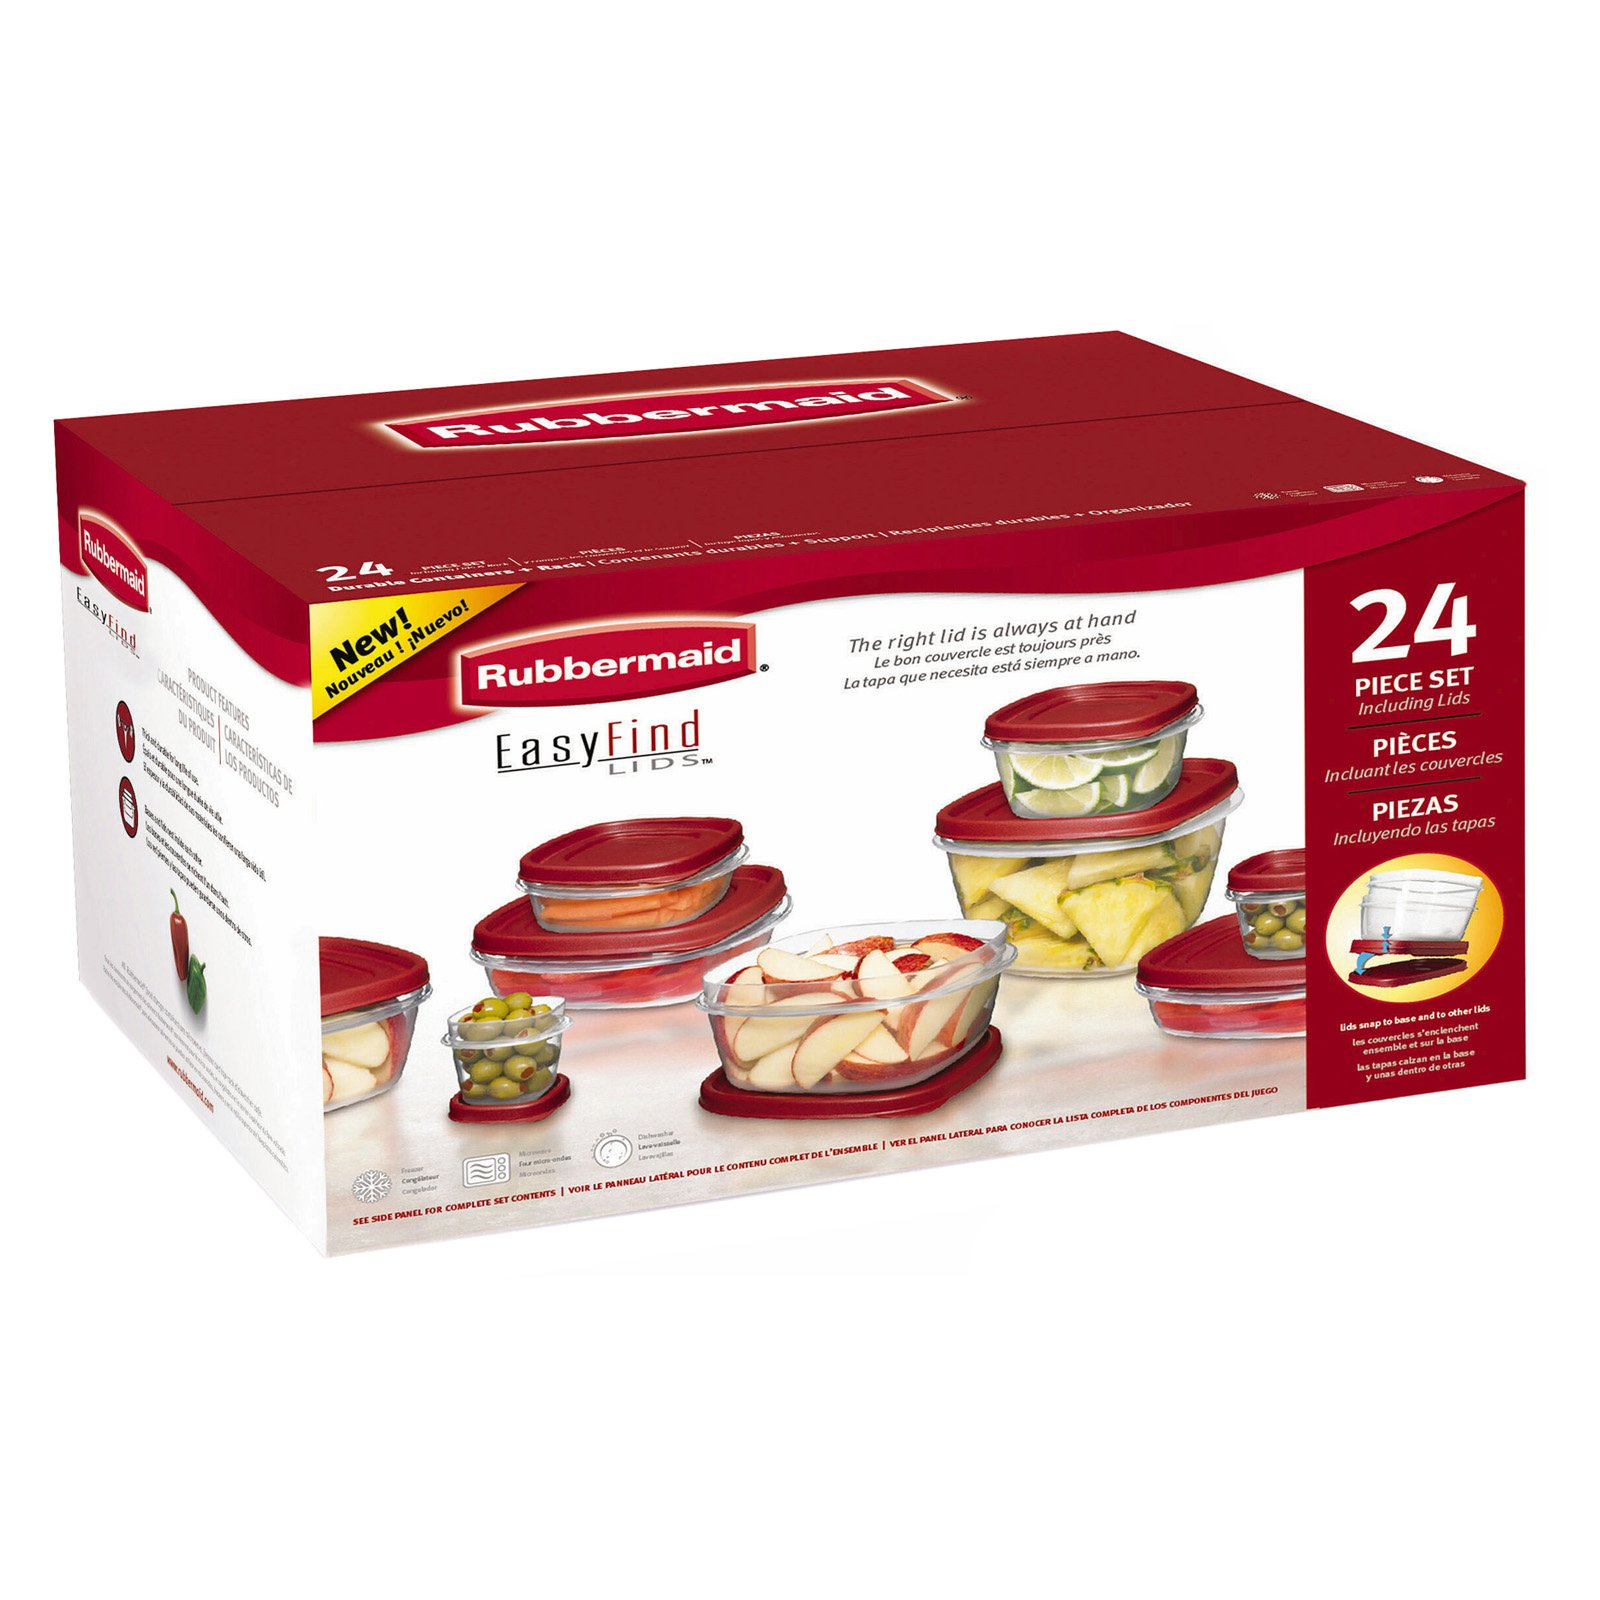 Rubbermaid Easy Find Lids 24-Piece Food Storage Container Set